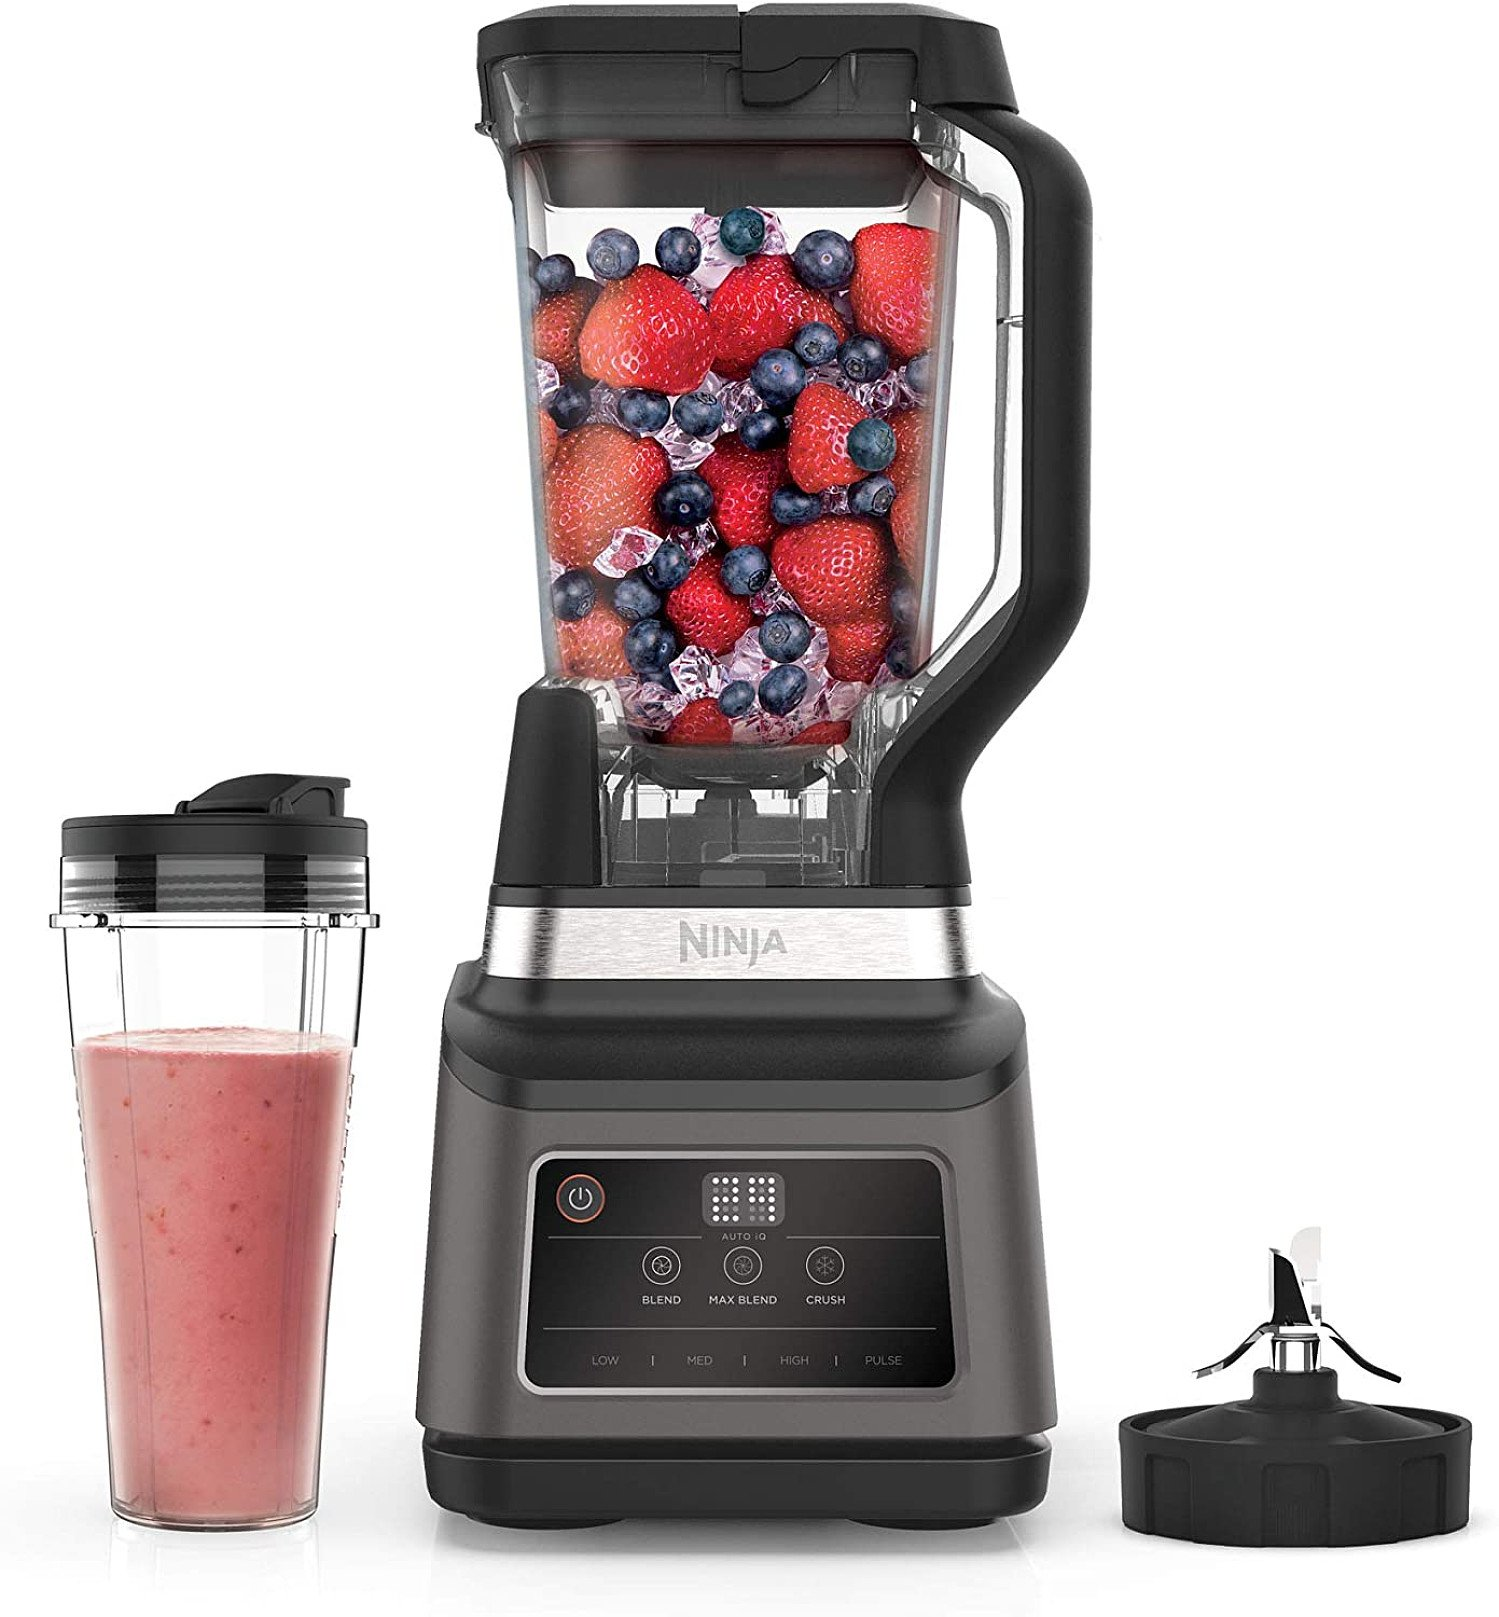 SAVE - Ninja 2-in-1 Blender with Auto-IQ